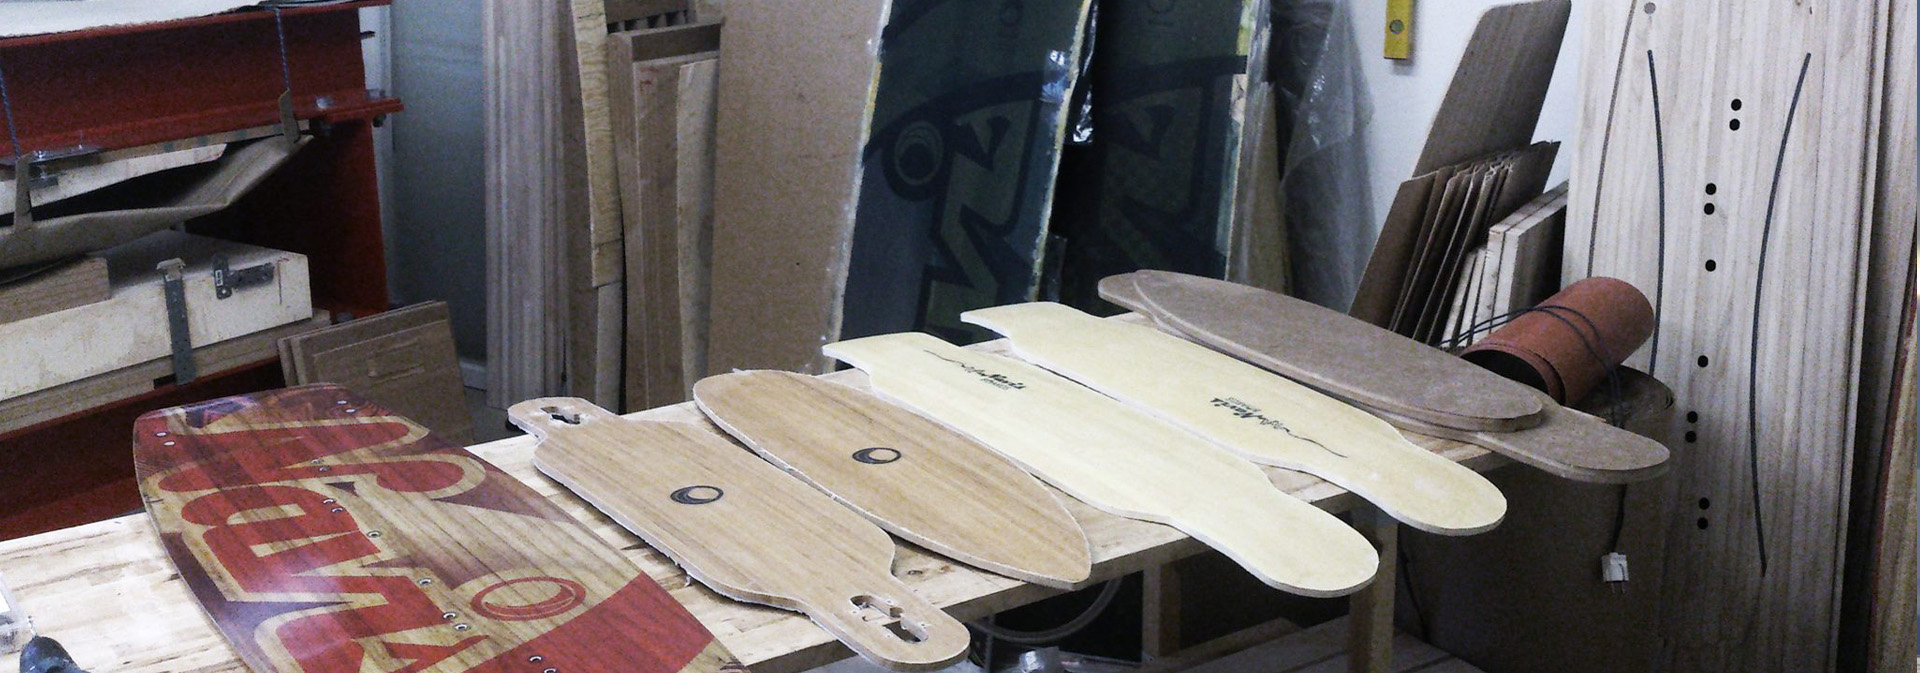 hand made kiteboards longboards and handmade skis and snowboards